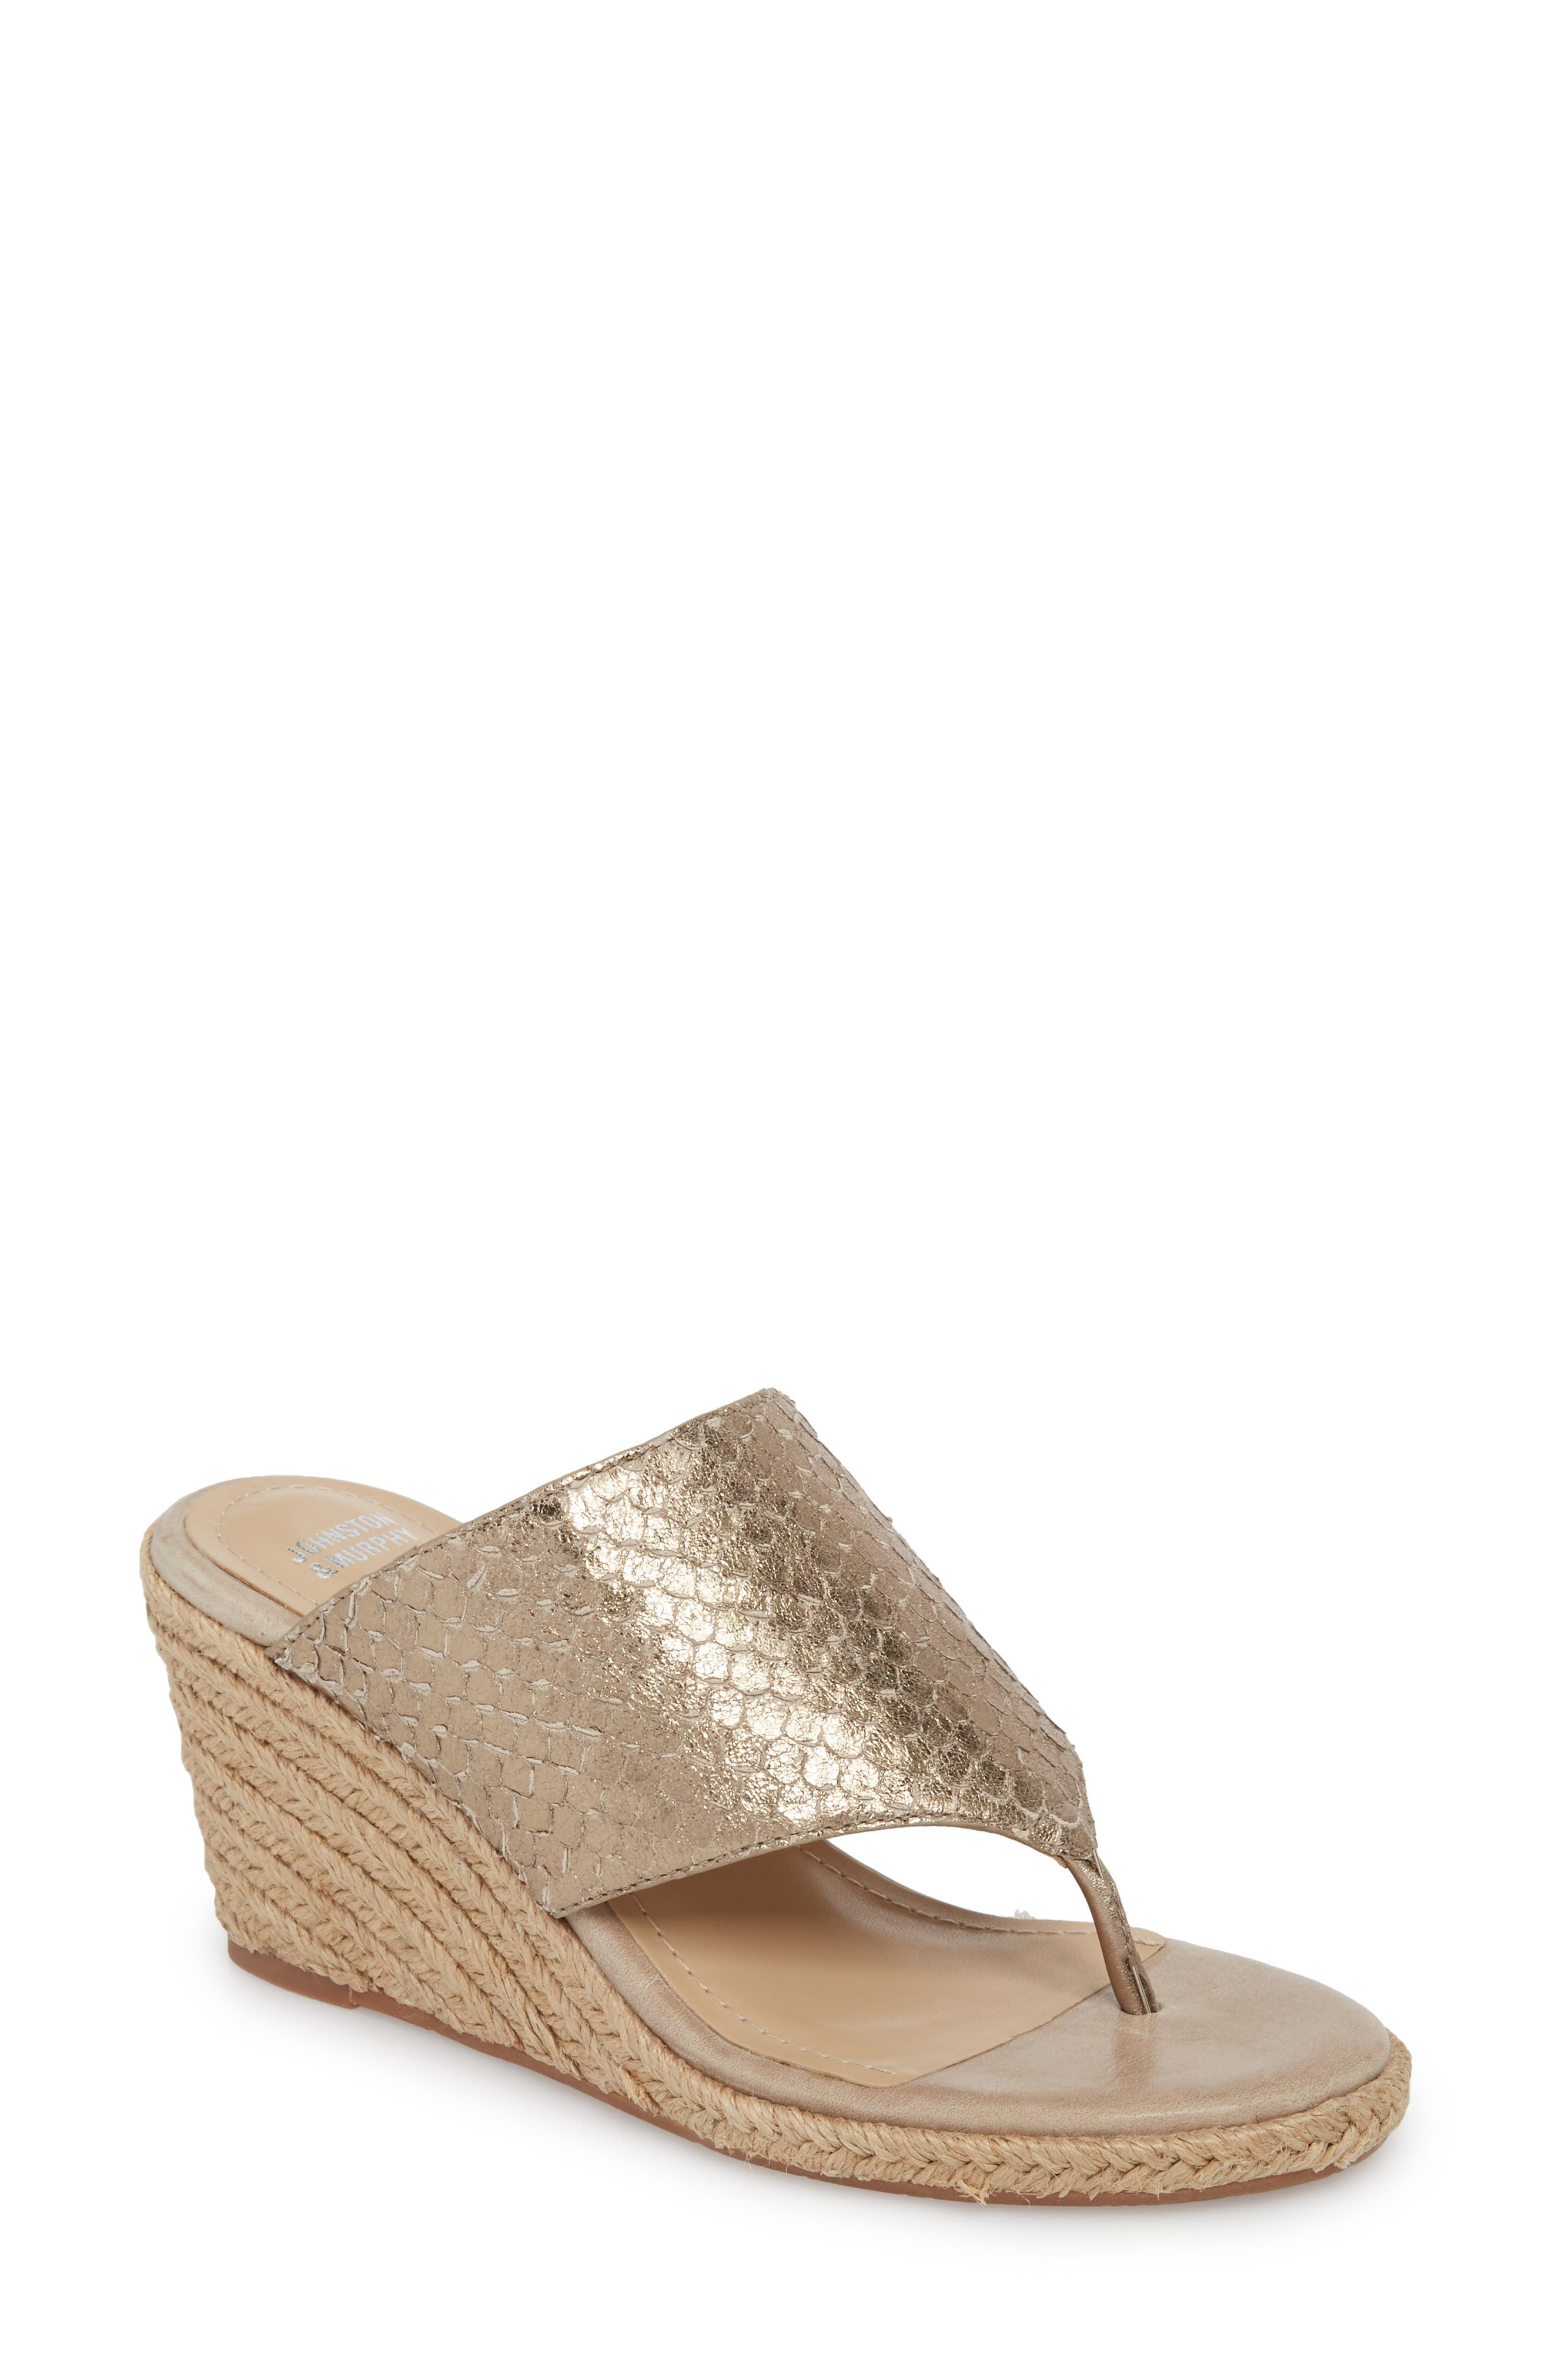 Gretchen Wedge Mule,                             Main thumbnail 1, color,                             Pewter Metallic Print Leather